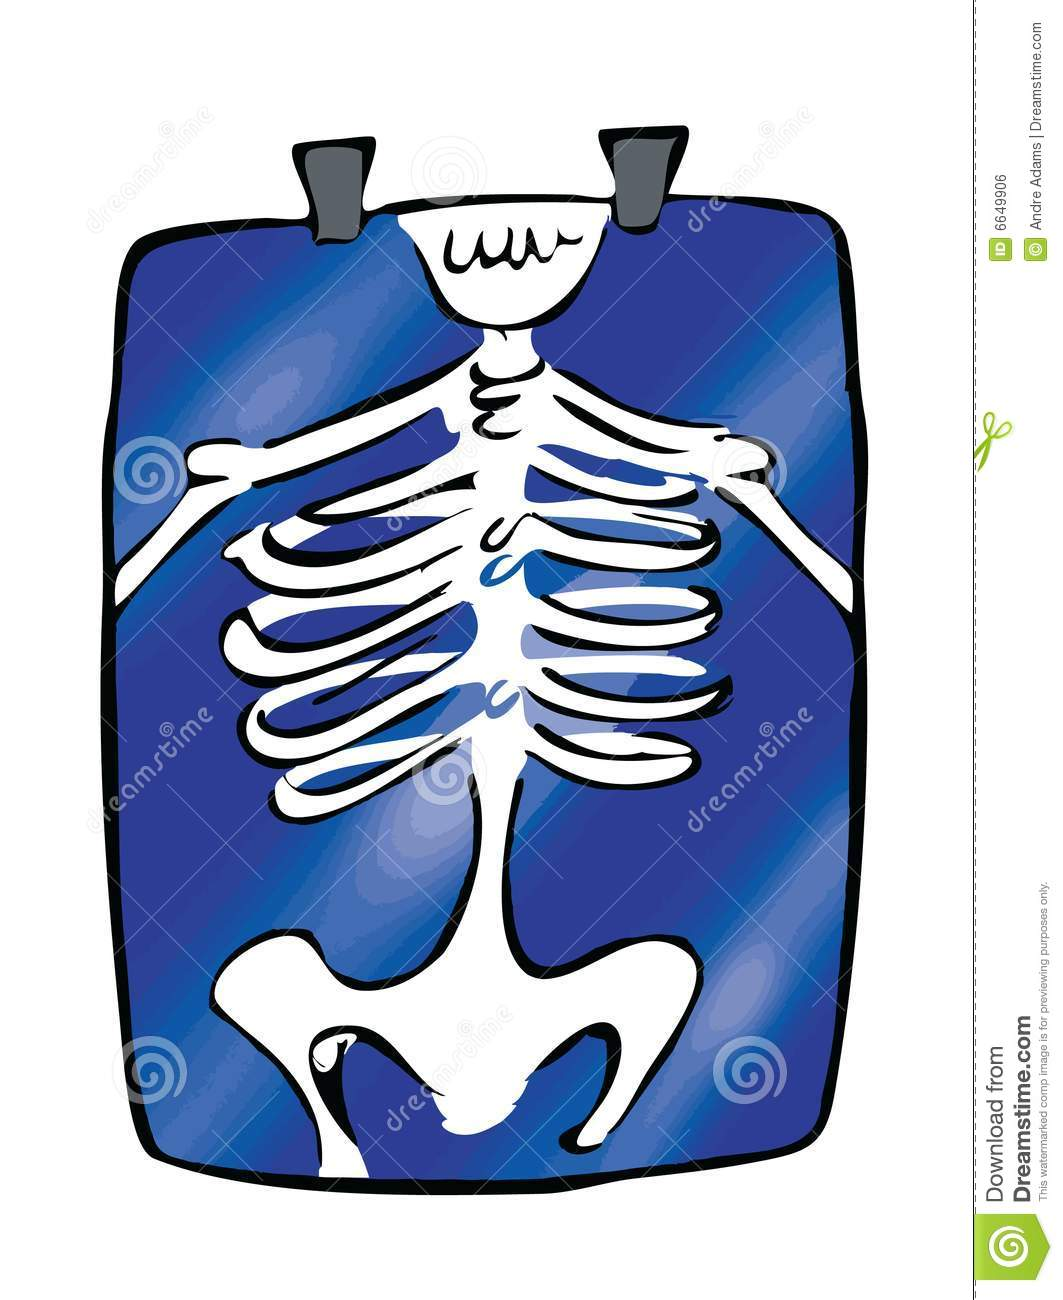 X-ray Cartoon Clipart - Clipart Suggest